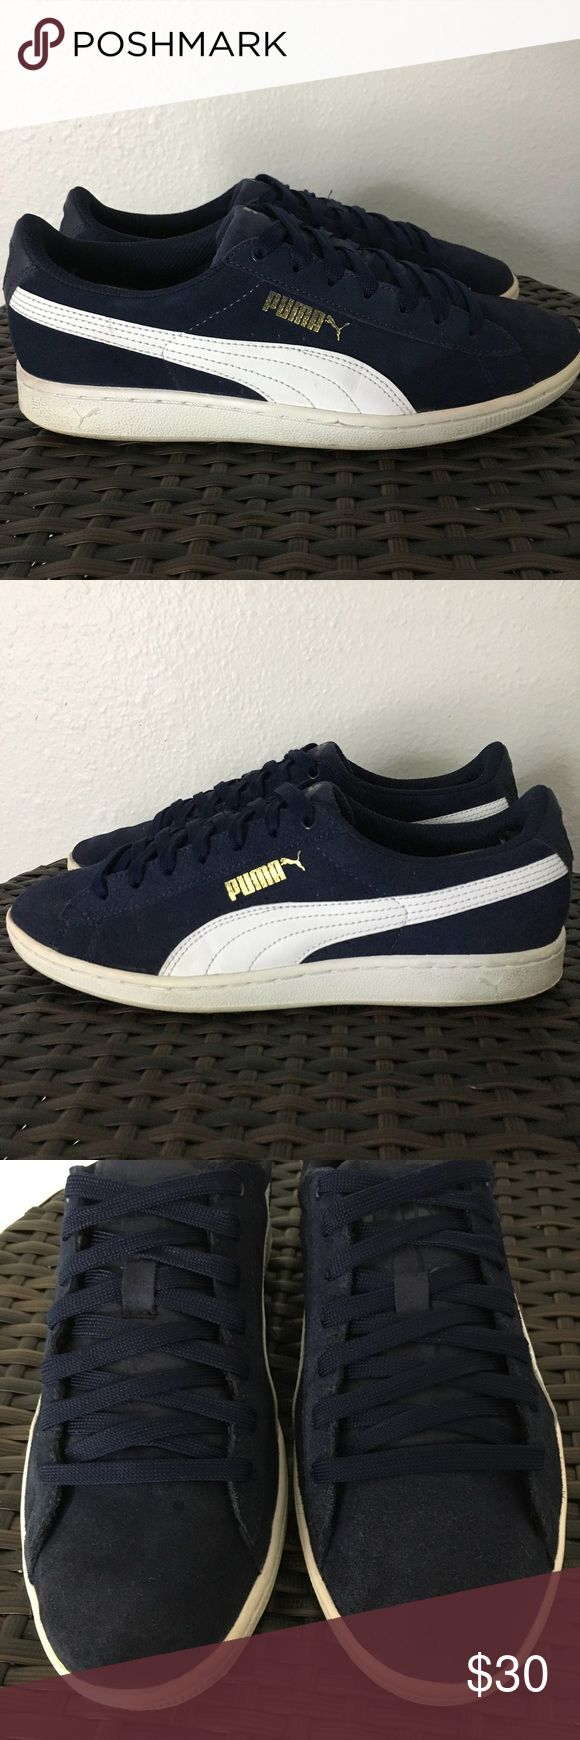 Puma Suede Shoes Puma suede shoes, men's size 6.5. Puma Shoes Sneakers